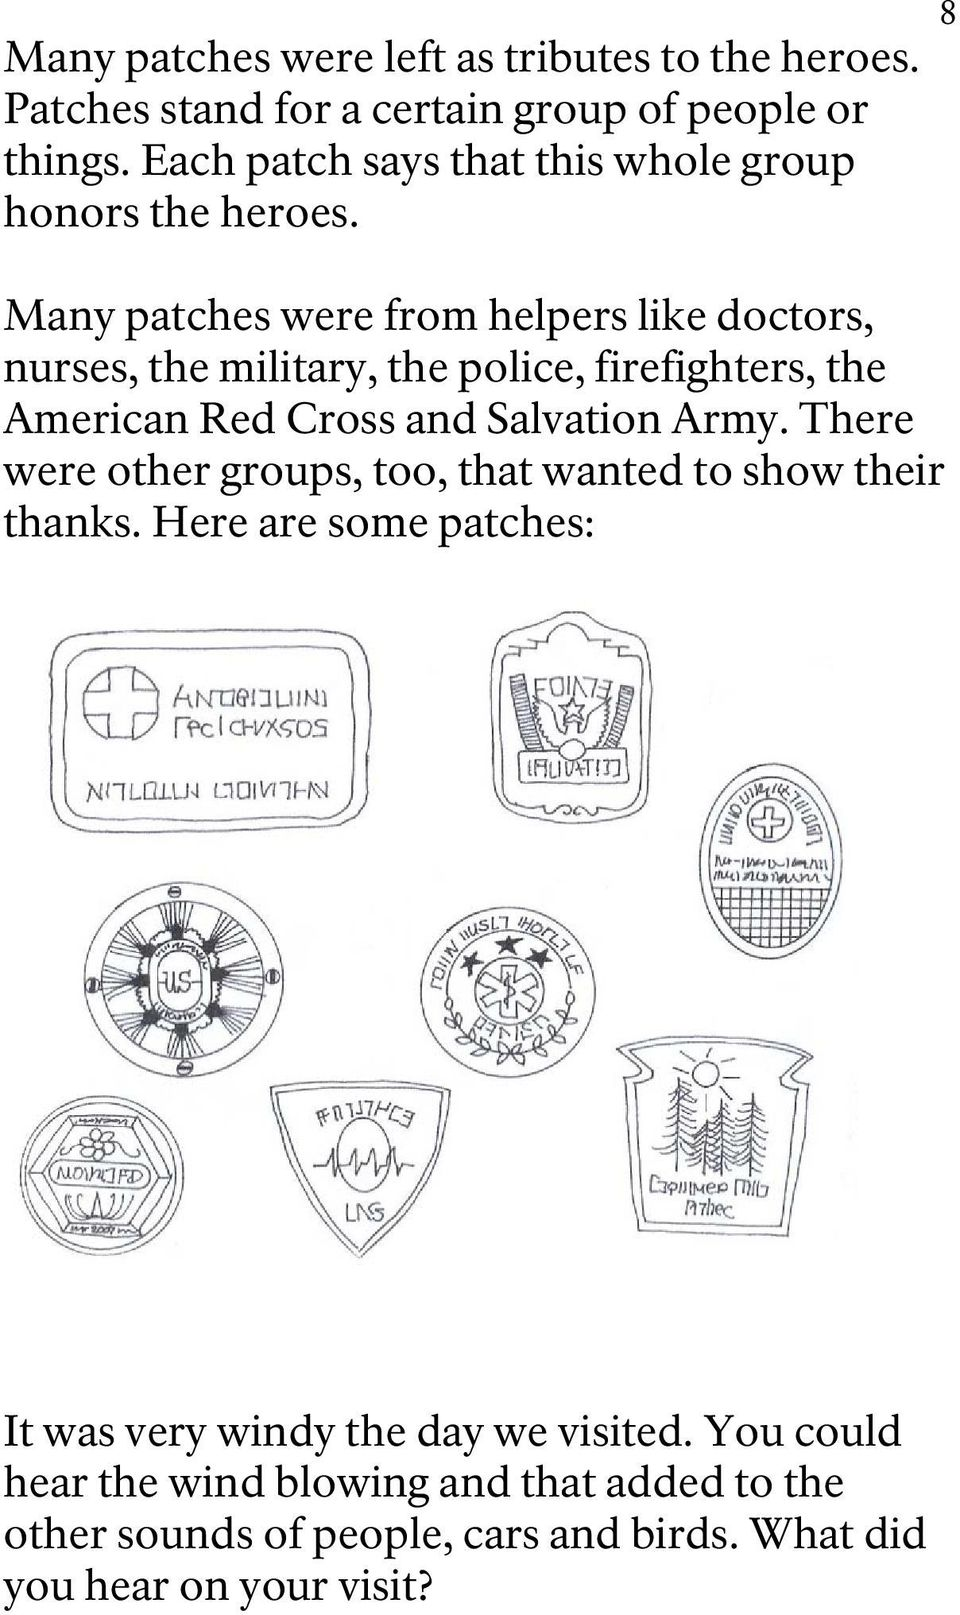 Many patches were from helpers like doctors, nurses, the military, the police, firefighters, the American Red Cross and Salvation Army.